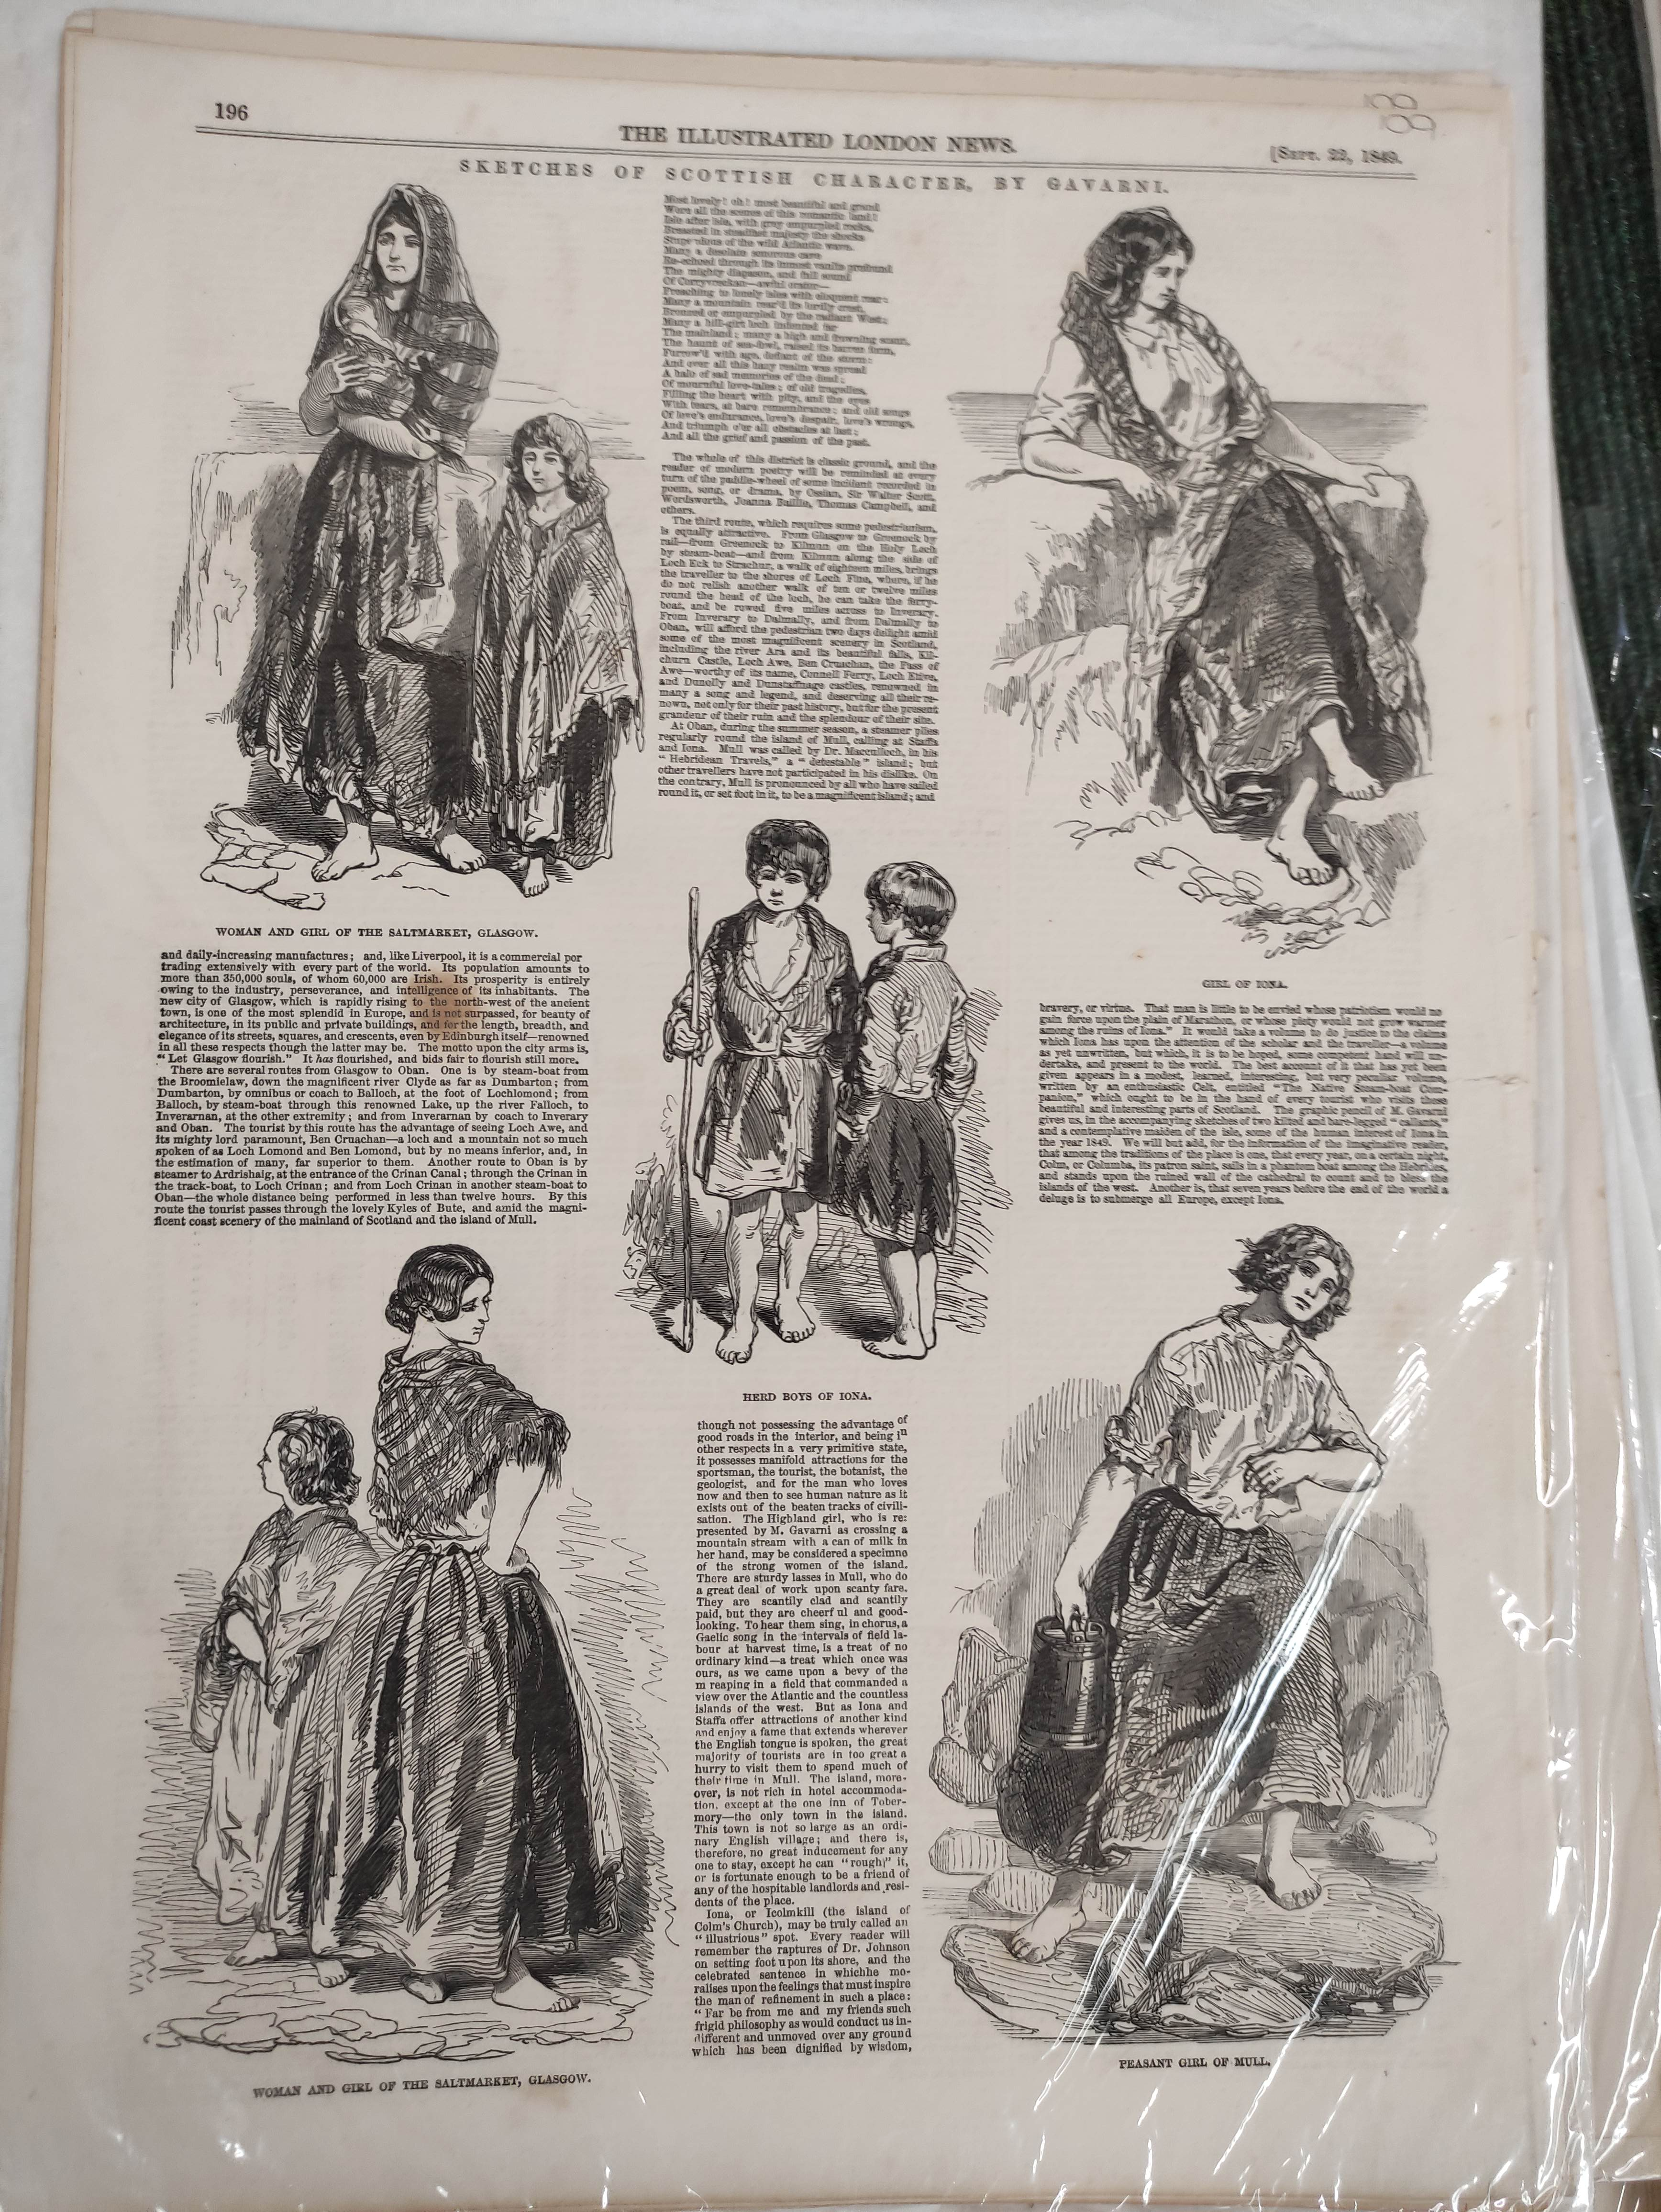 Illustrated London News, The Graphic & other periodicals. A collection of extracts & loose illus. - Image 4 of 9